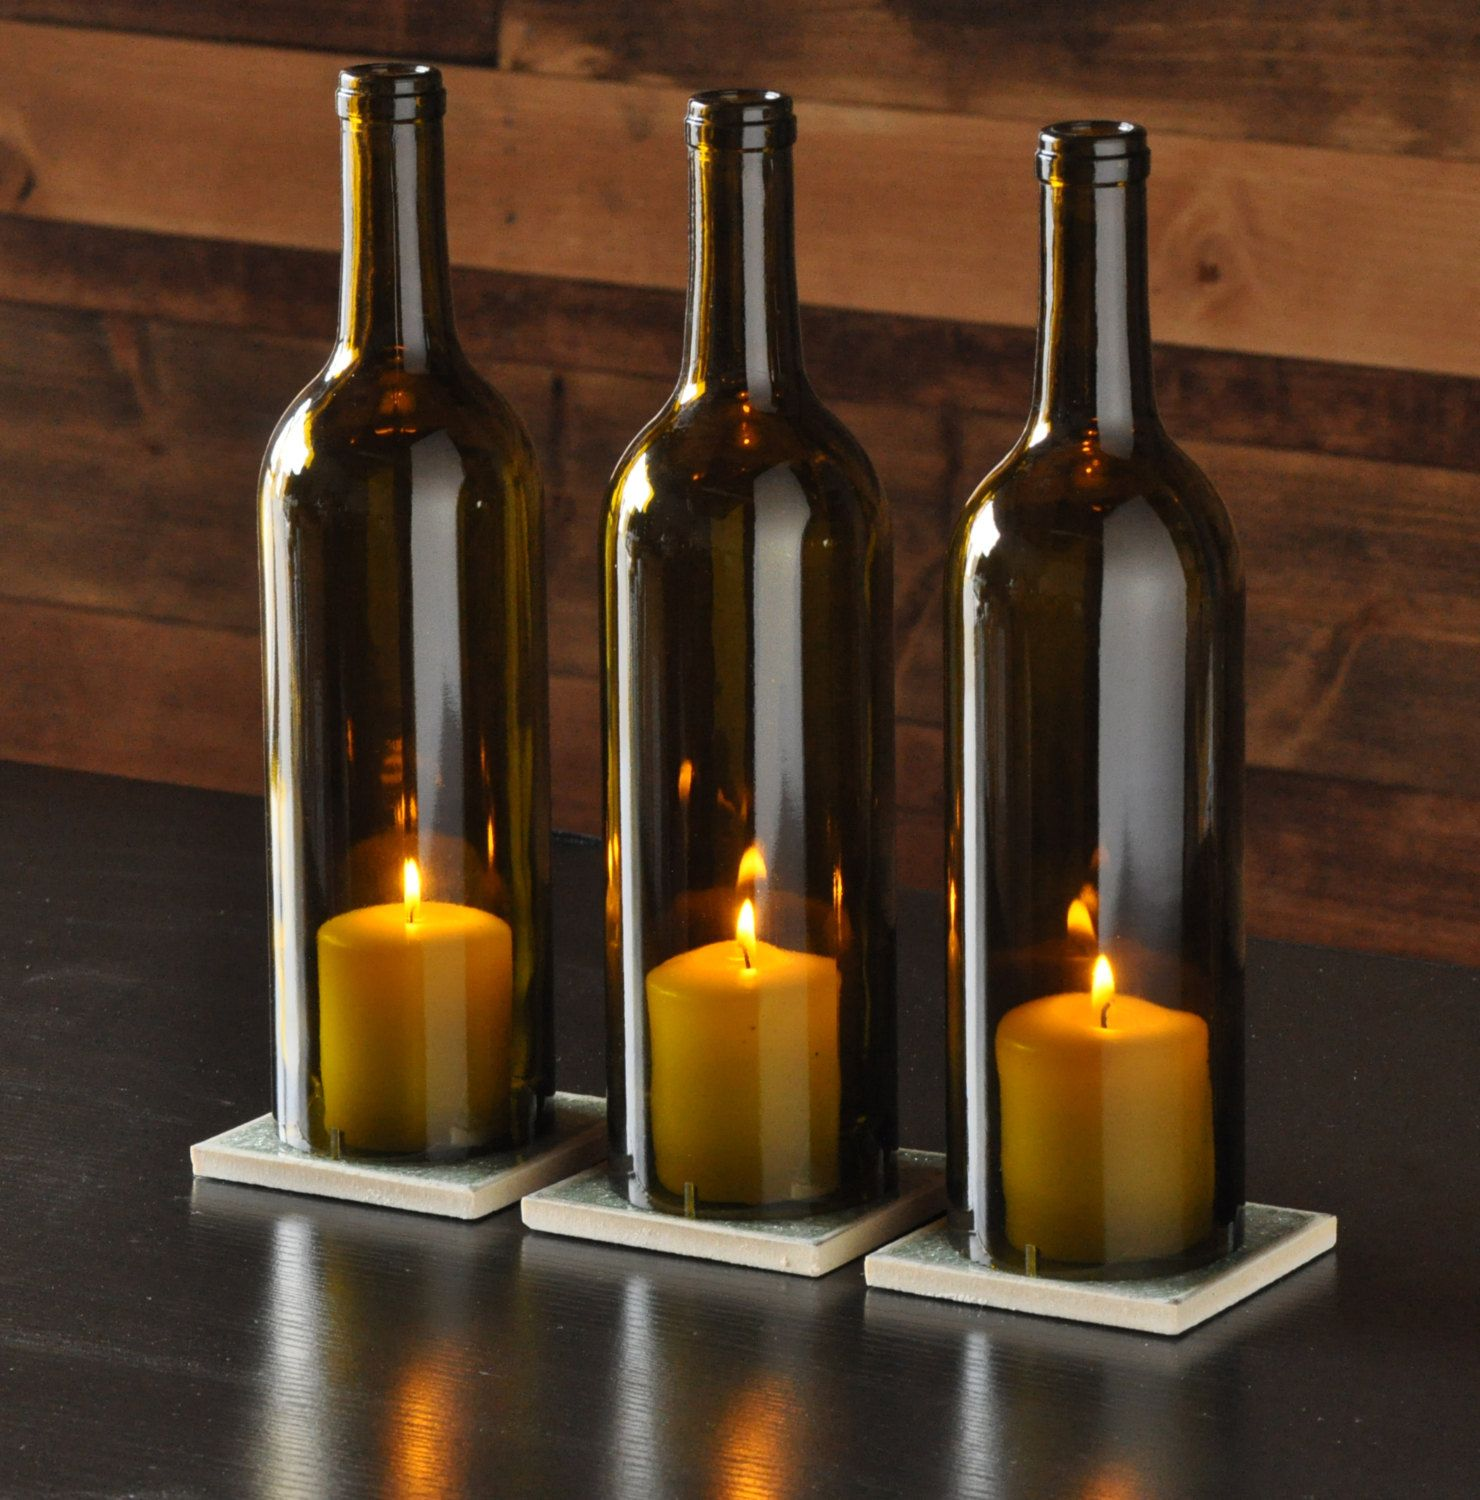 wine bottle lamp - Click image to find more DIY & Crafts Pinterest pins |  Gotta have a craft board. | Pinterest | Bottle candles, DIY ideas and  Outdoor ...